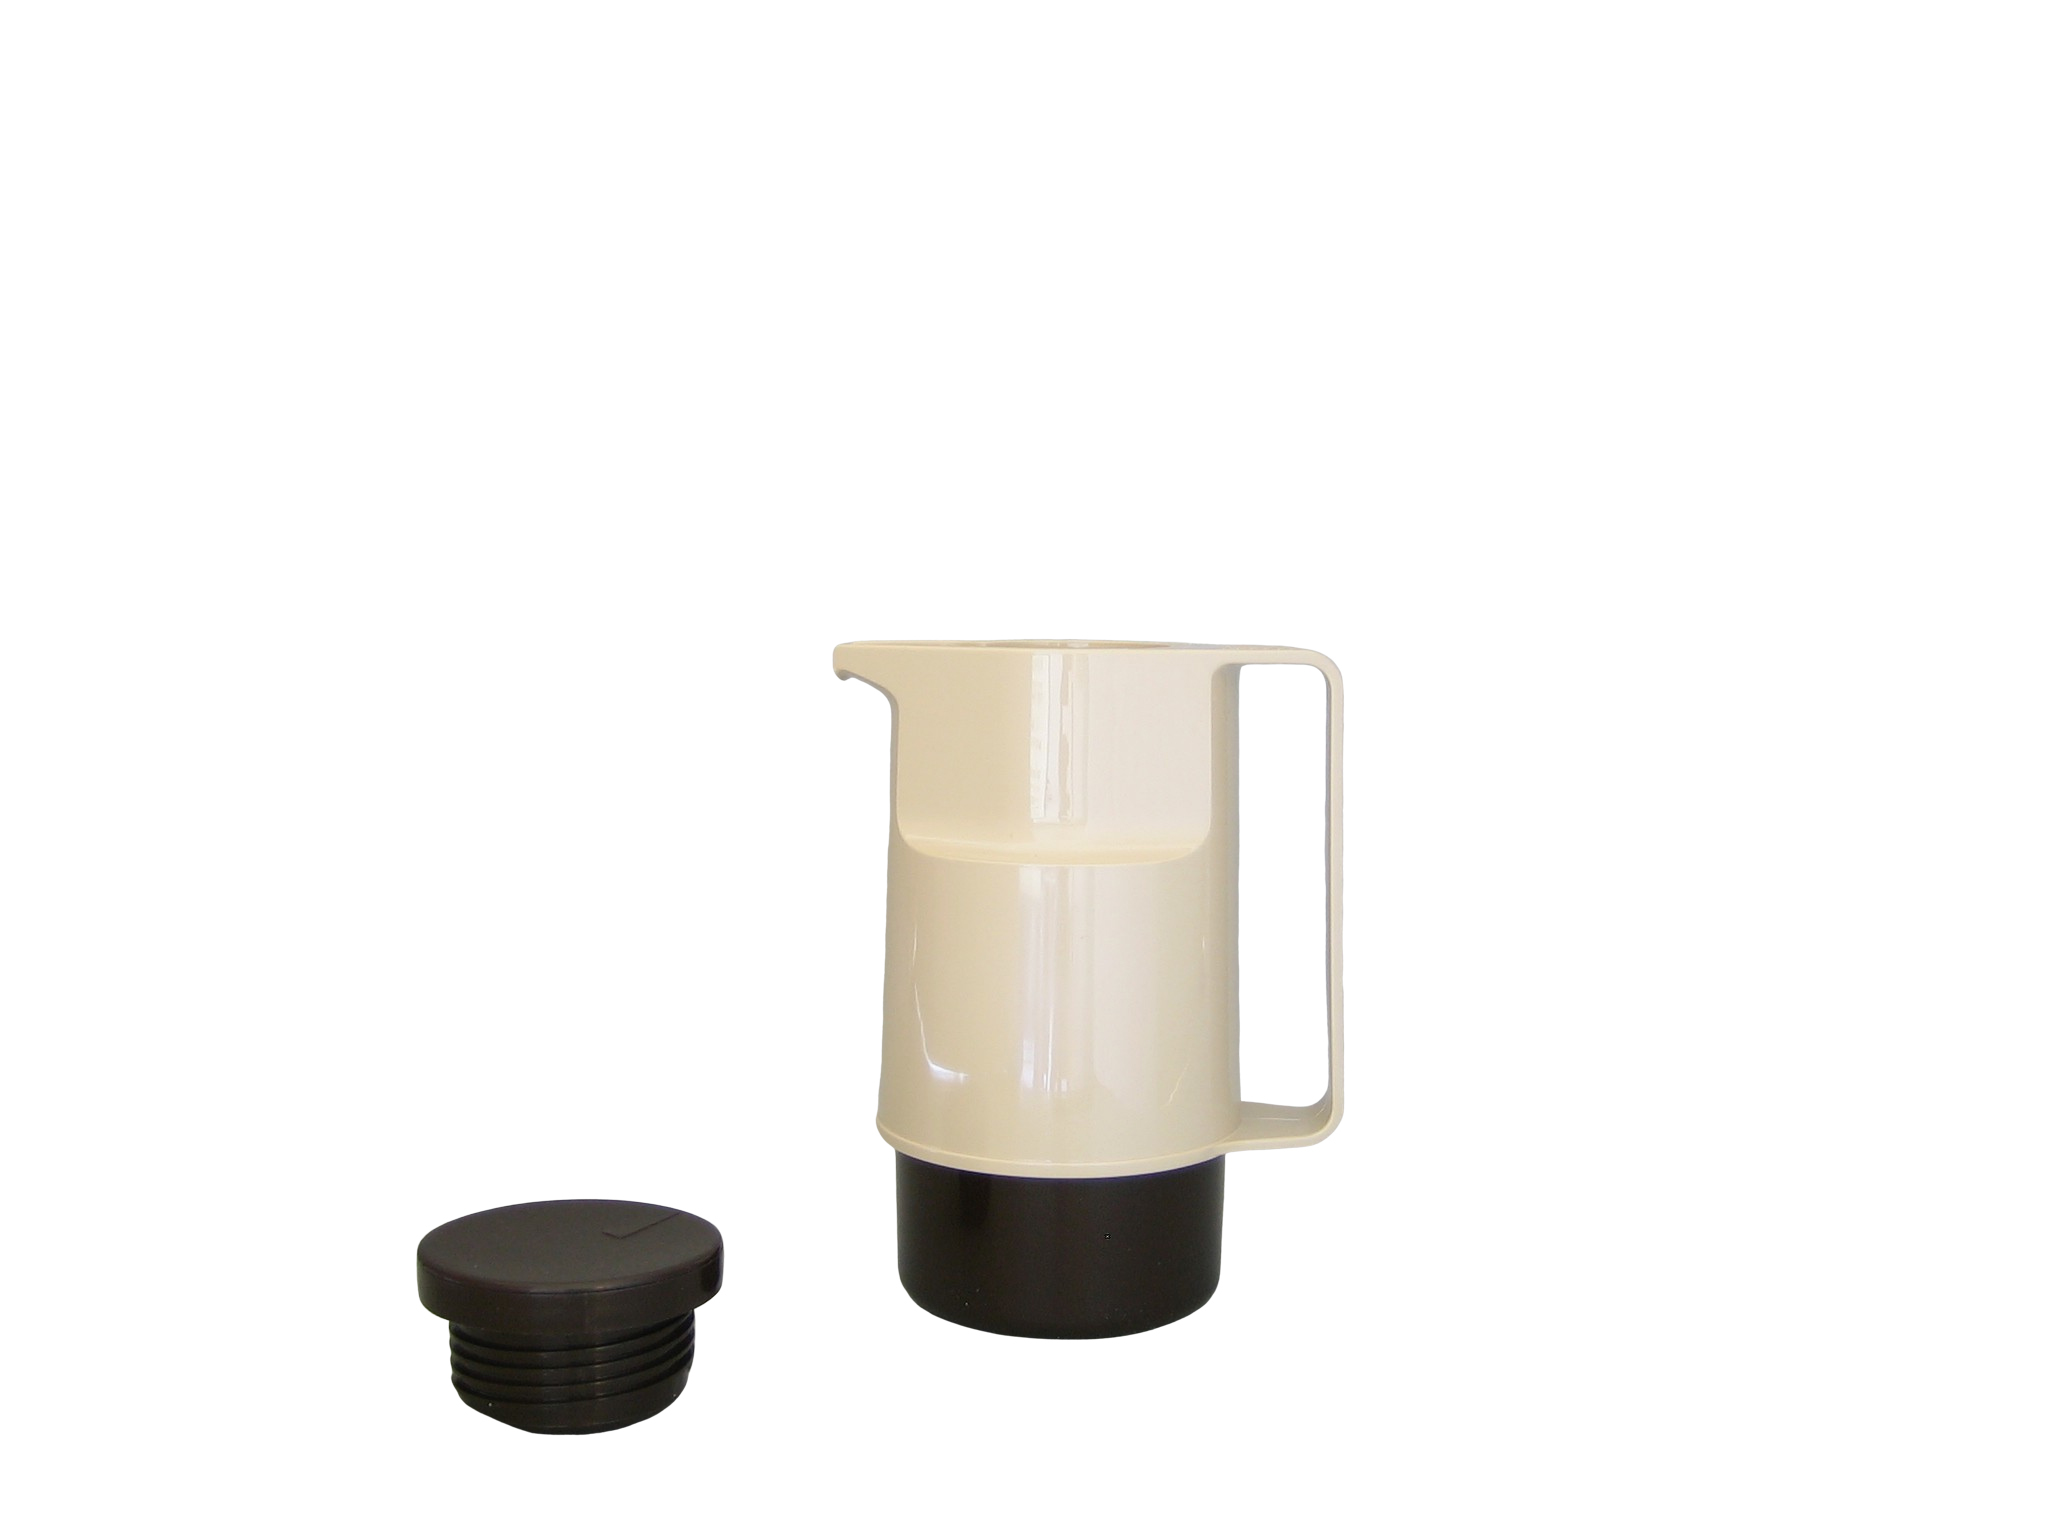 203-1030 - Pichet isotherme ABS beige/brun 0.30 L - Isobel